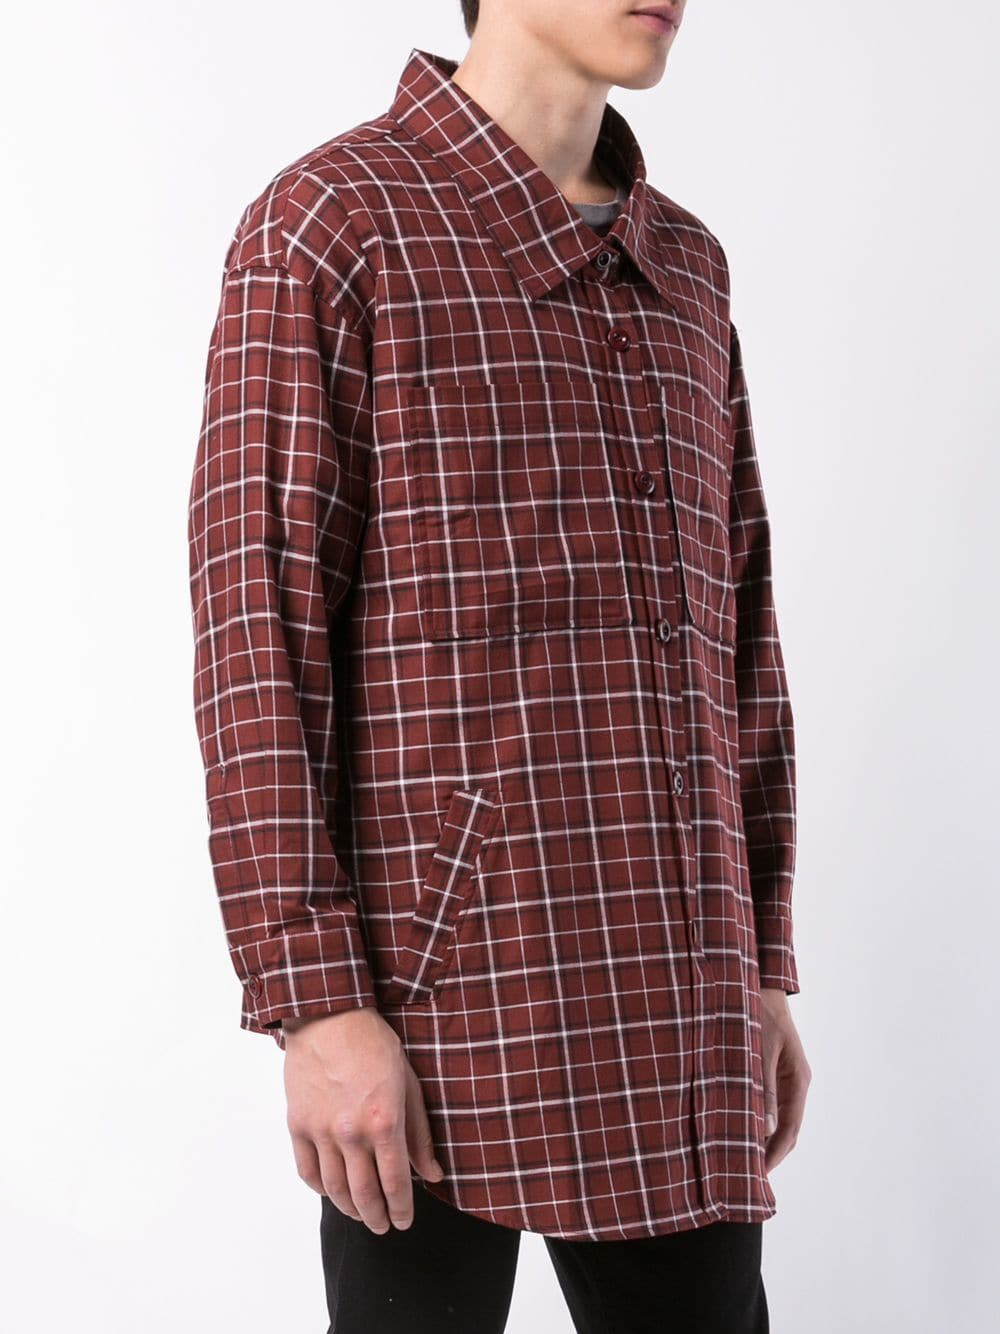 FAITH CONNEXION UNISEX CHECK OVER SHIRT X1801T00155 635